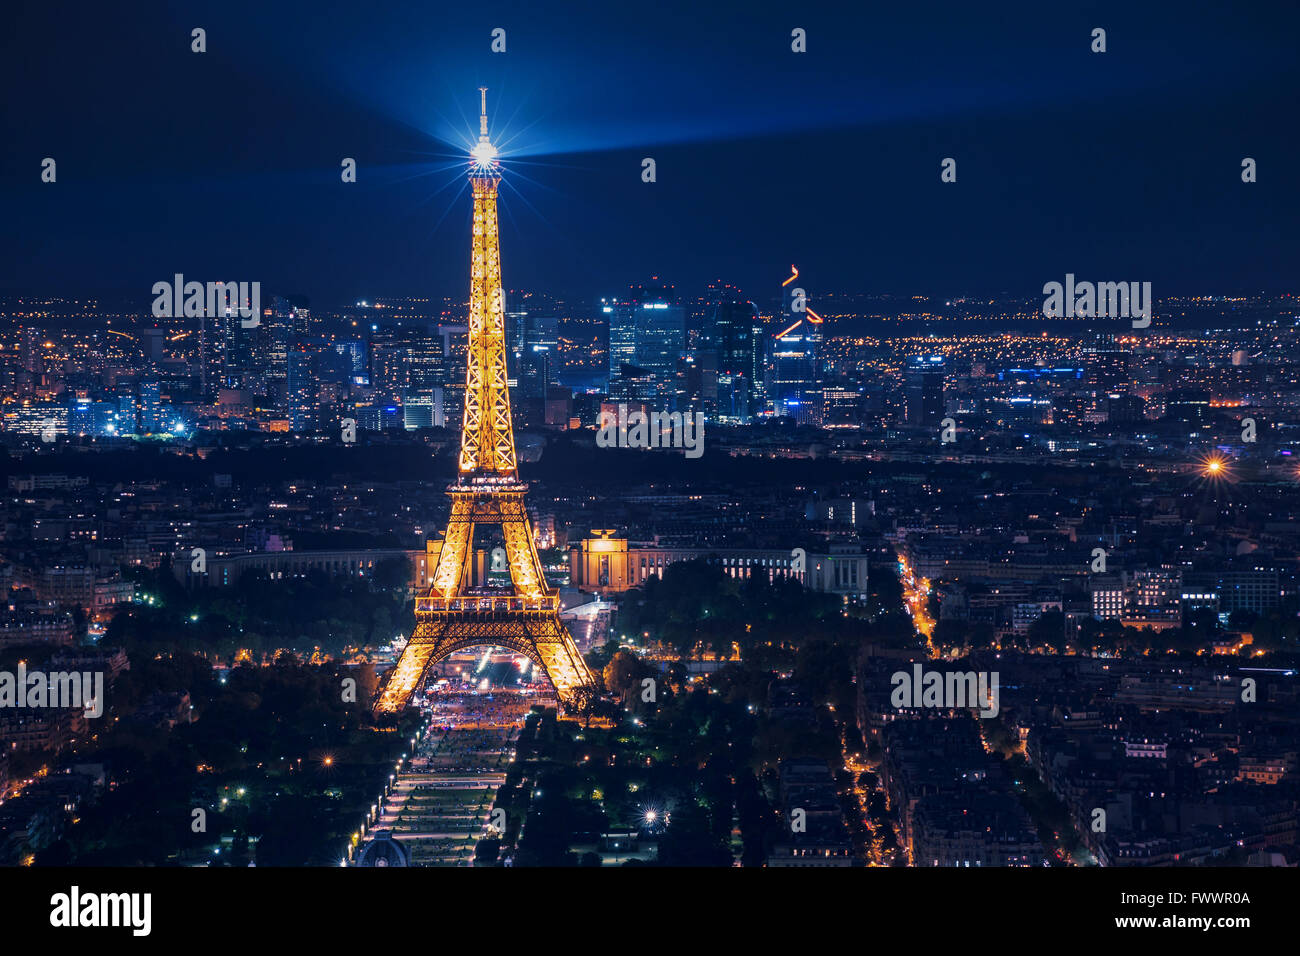 beautiful night scene of illuminated Eiffel Tower and panoramic aerial view of Paris, France - Stock Image